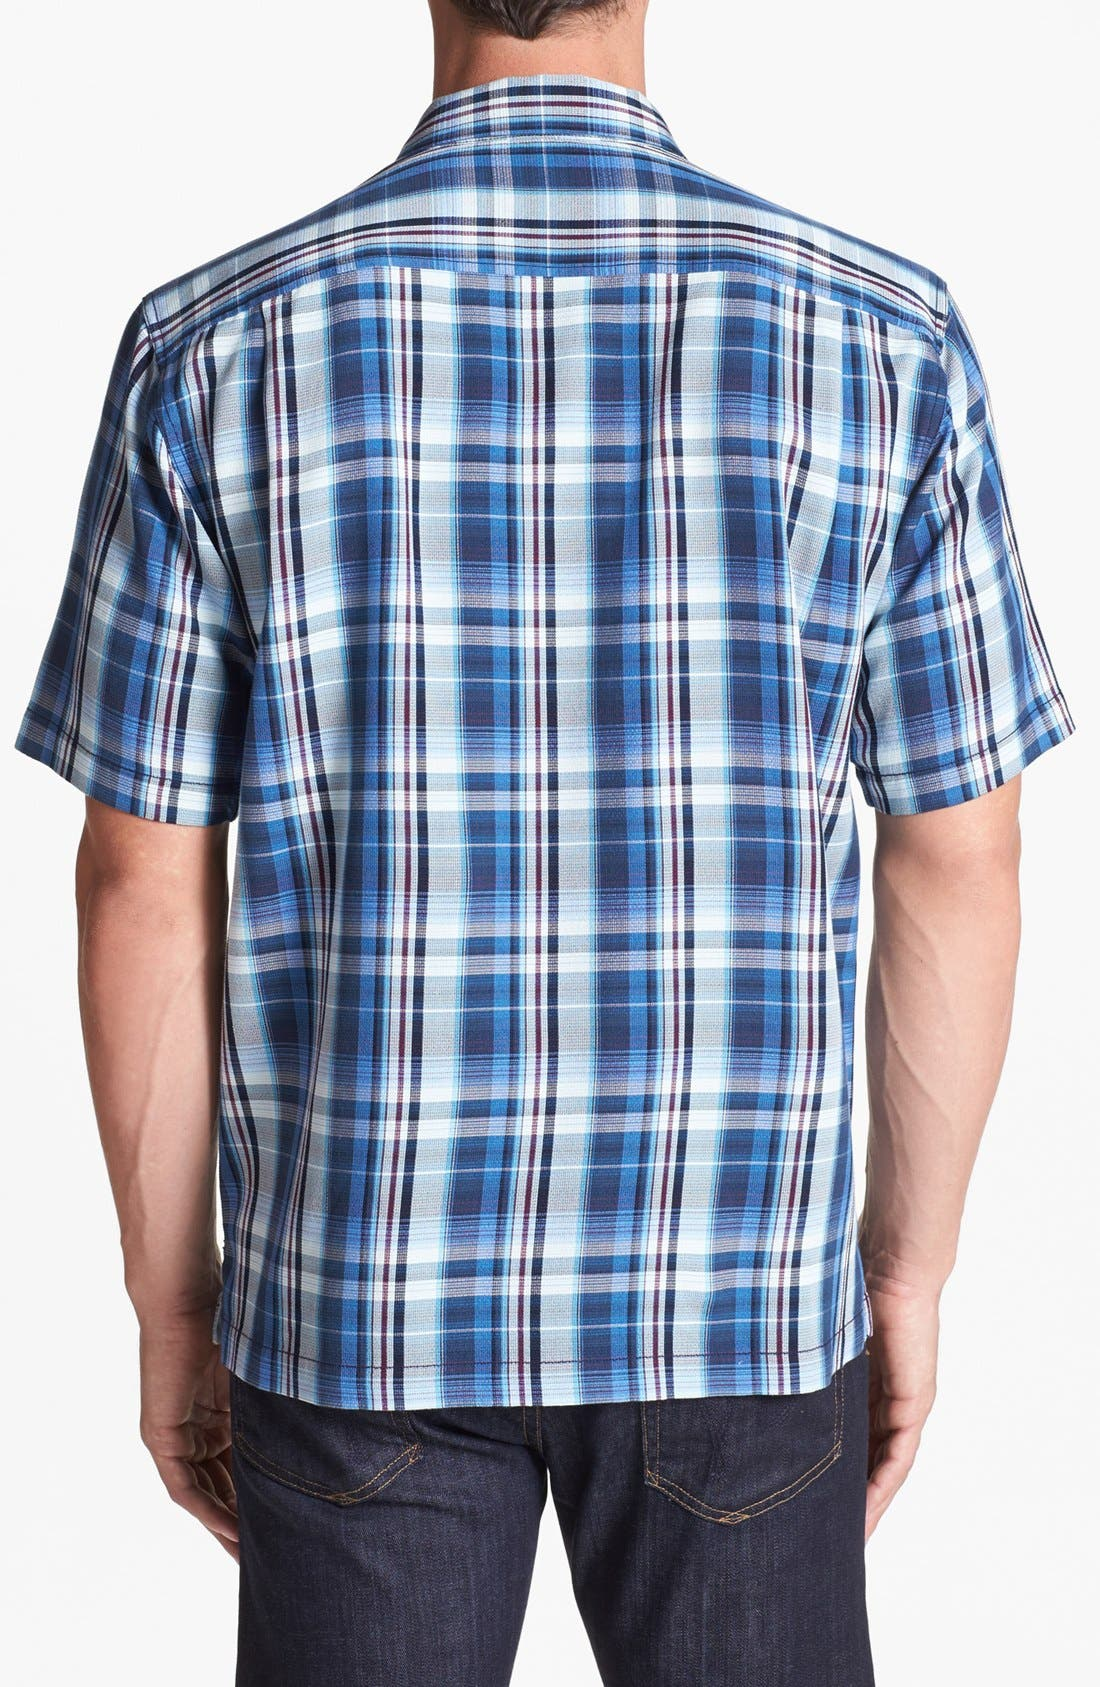 Alternate Image 2  - Tommy Bahama 'Ocean Abyss' Silk Campshirt (Big & Tall)